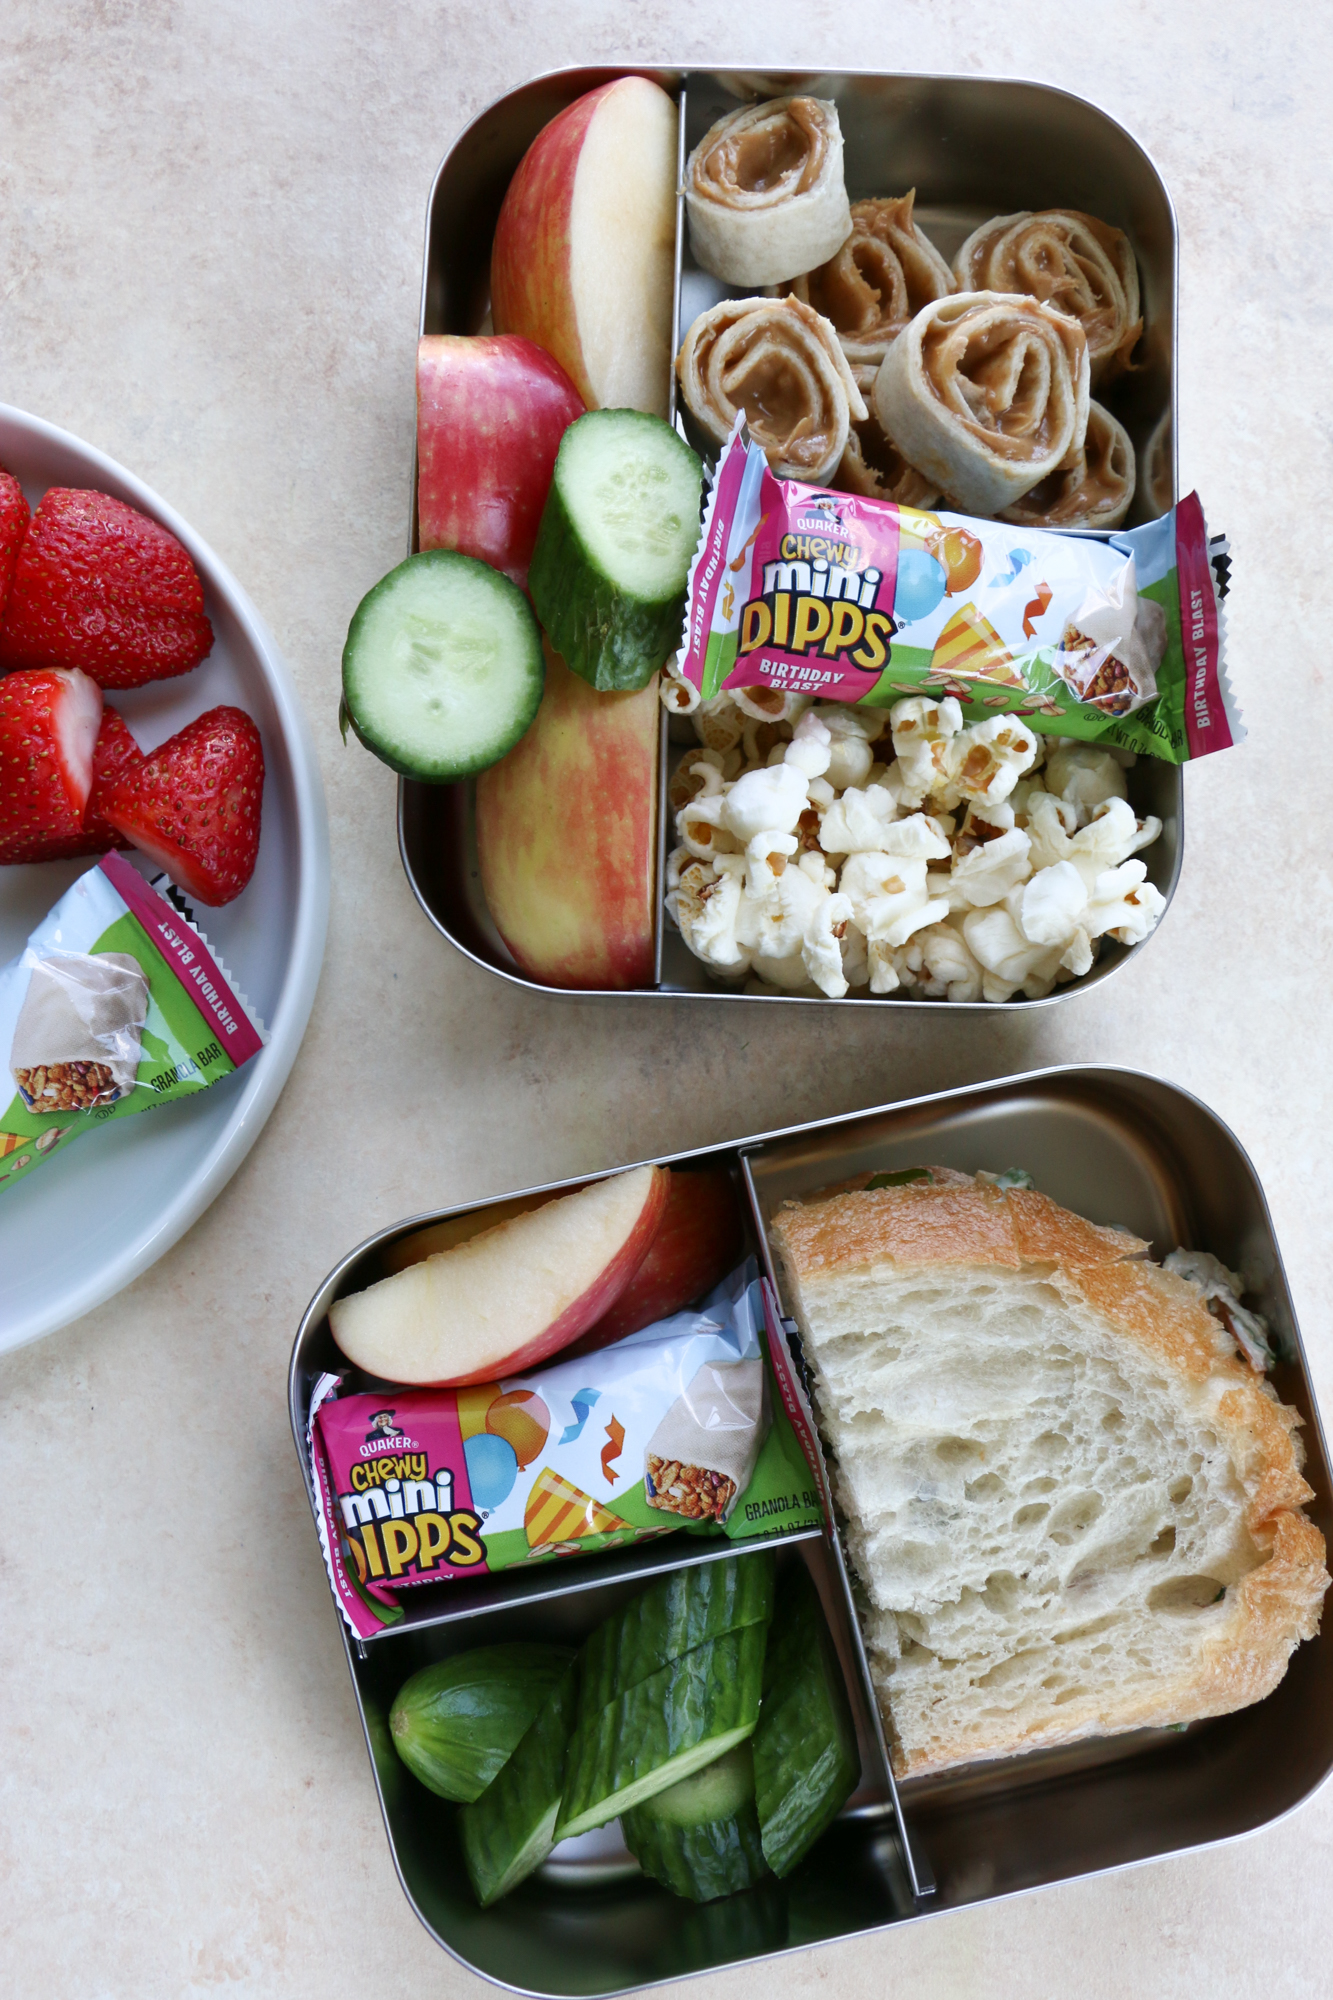 Back to School Lunches! It's that time of the year again! Let me help you take the guess work out of packing lunch for your kids. Here are some great options for packing a healthy lunch for your child.